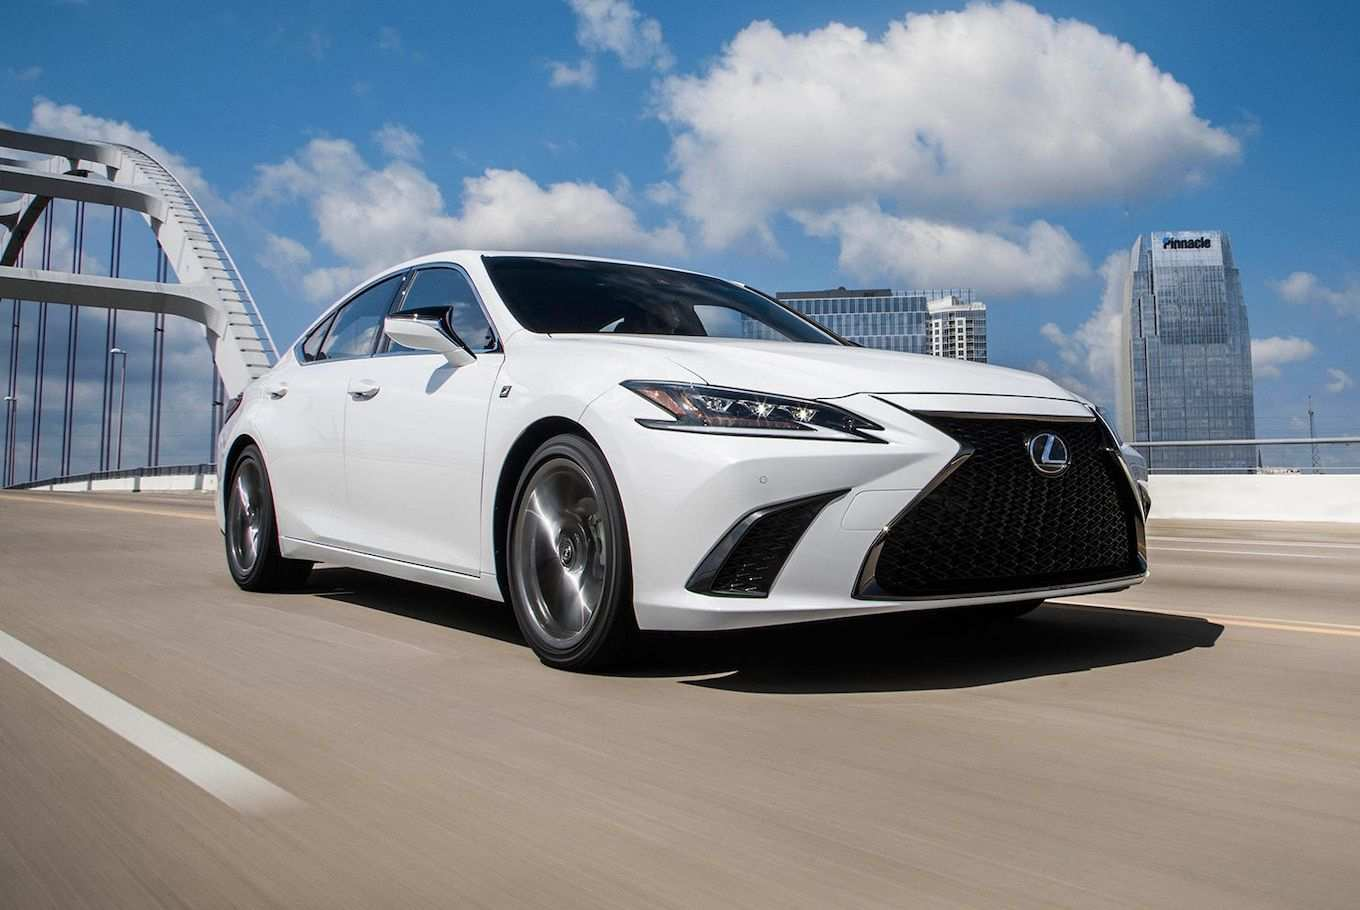 97 All New Colors Of 2020 Lexus Es 350 Images with Colors Of 2020 Lexus Es 350